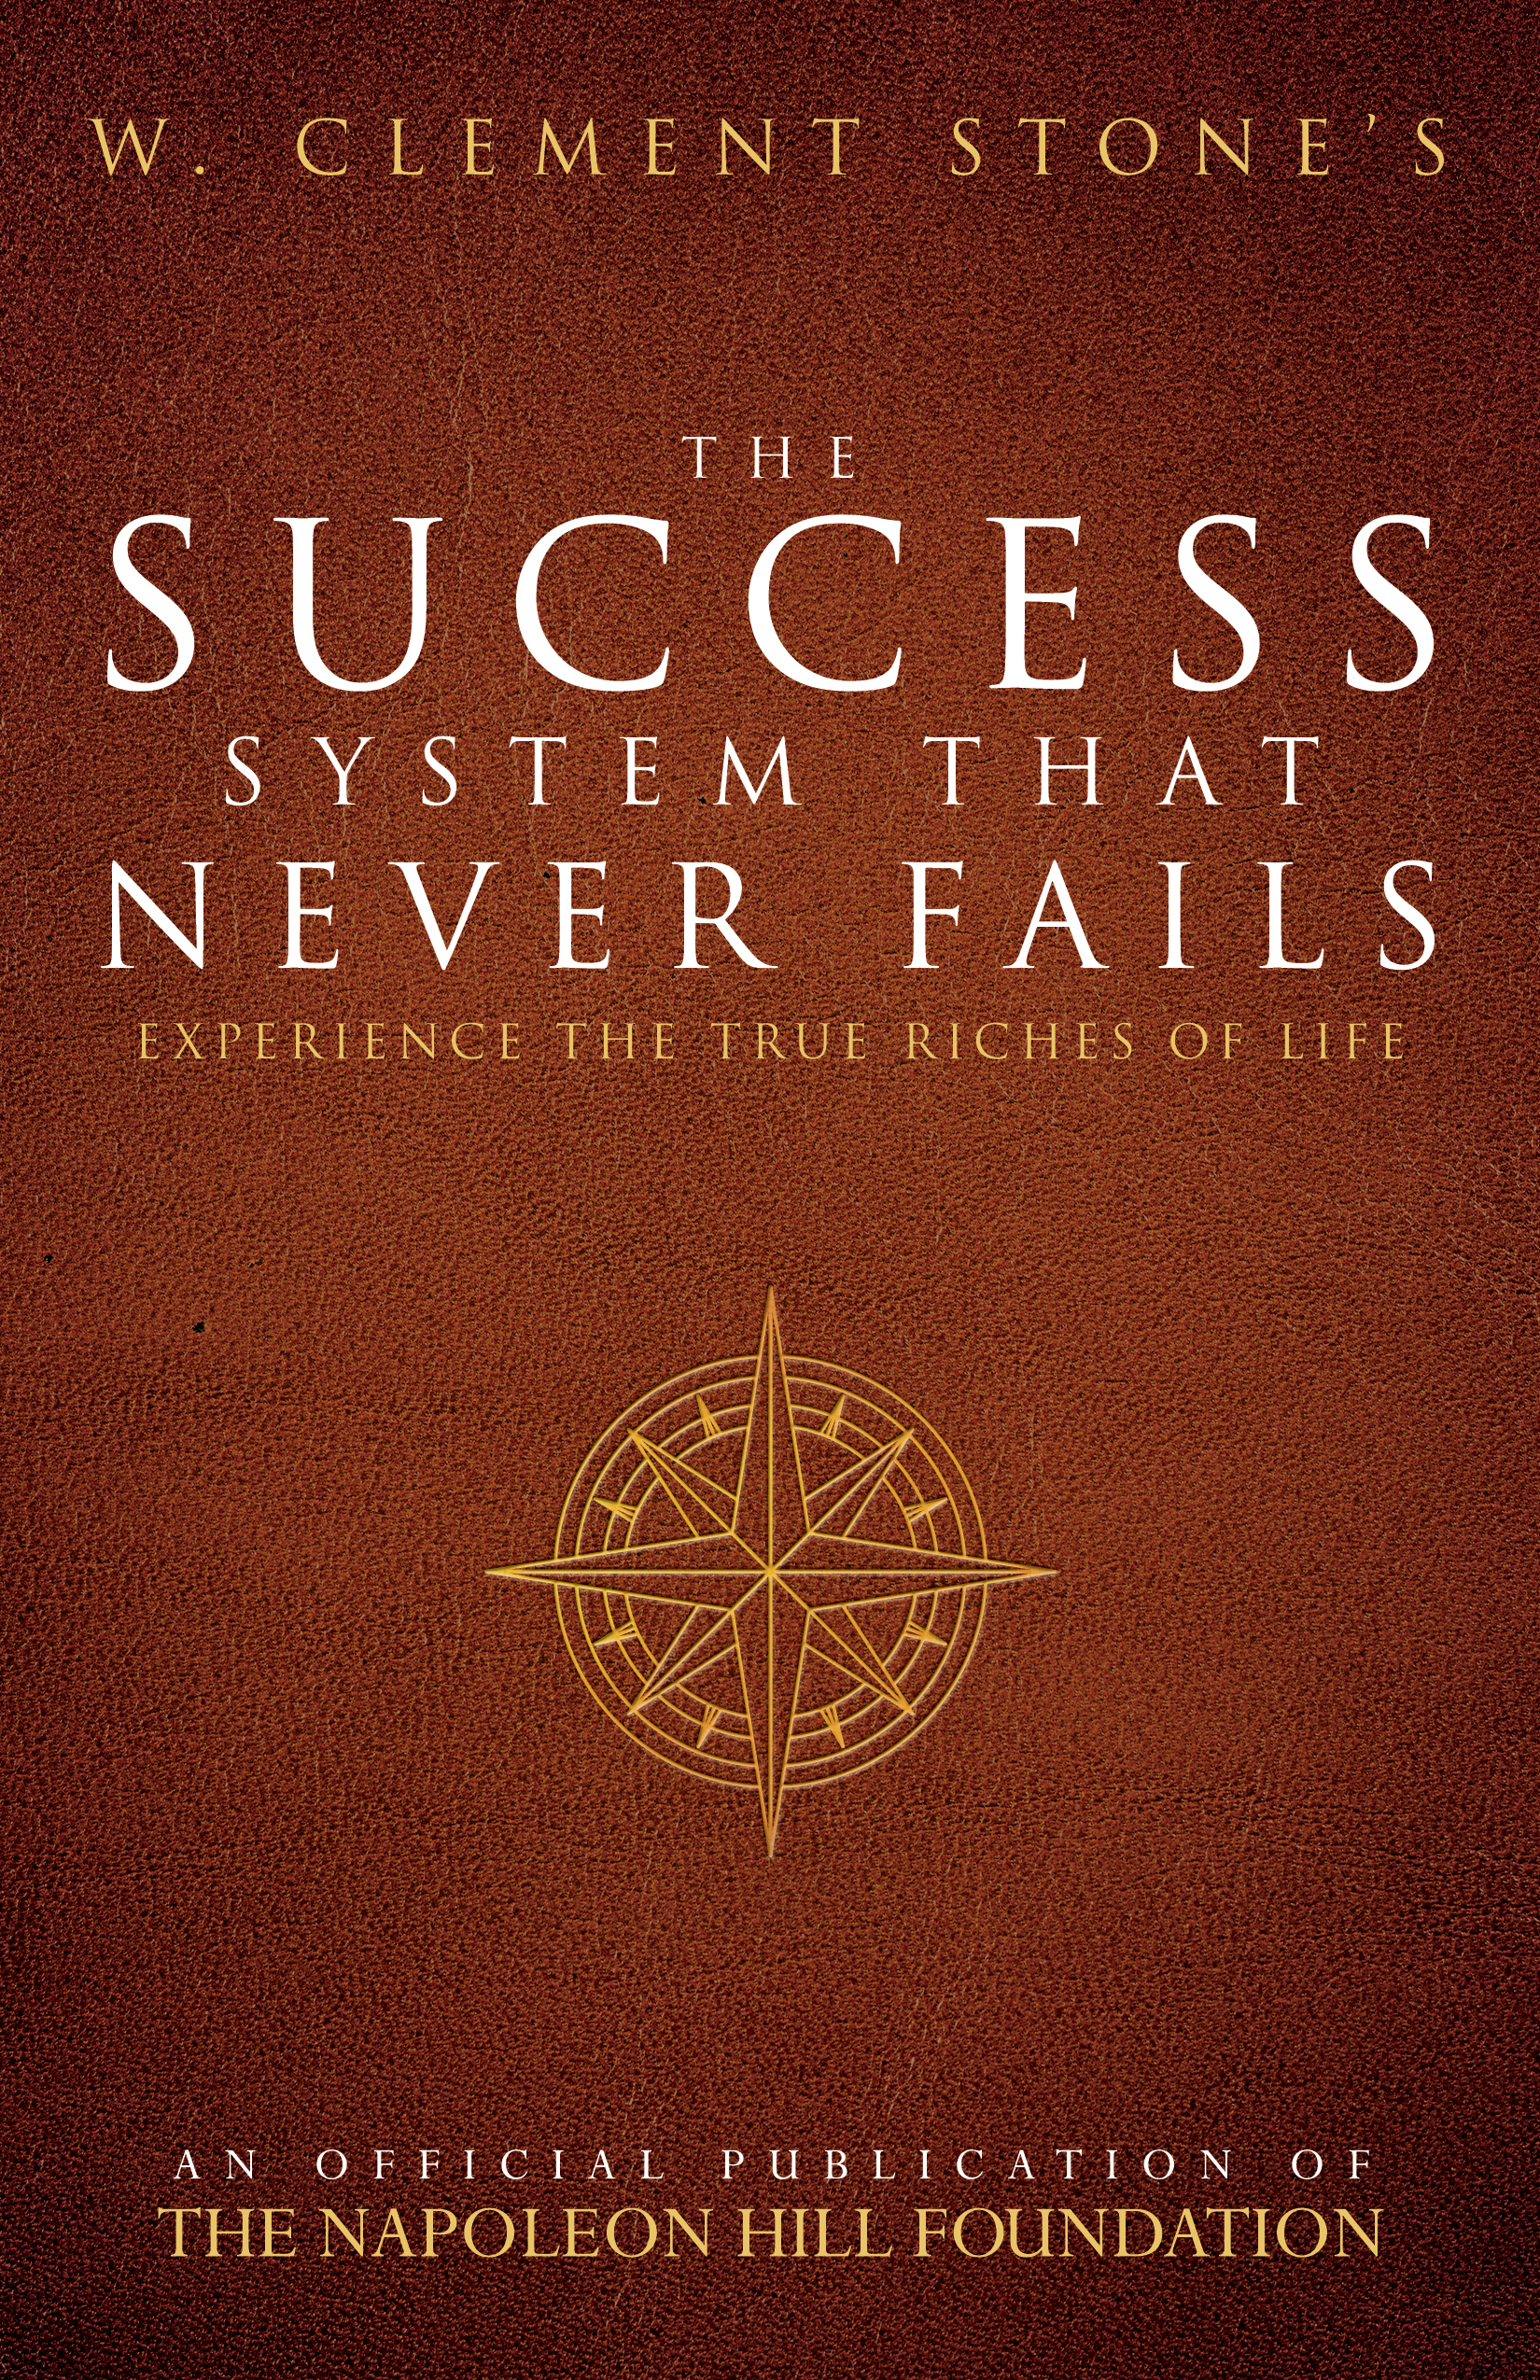 W. Clement Stone's The Success System that Never Fails - By w. clement stone